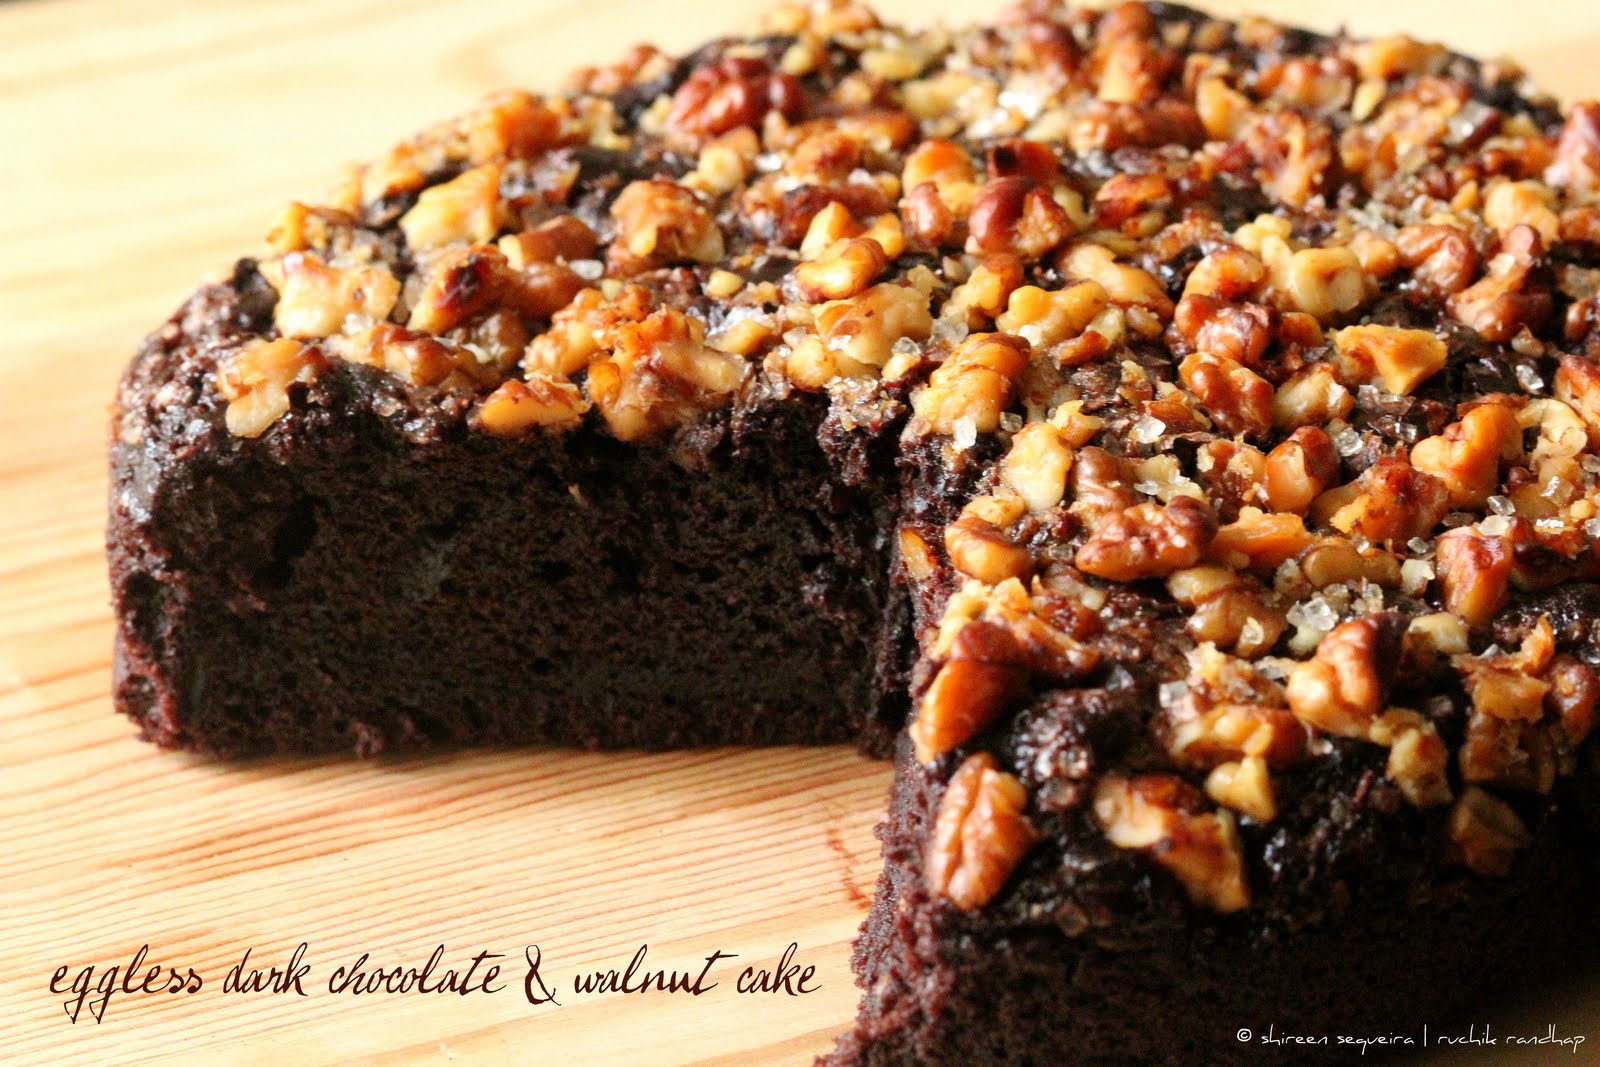 The Amazing Quick Recipes : How To Make A Chocolate Walnut Cake